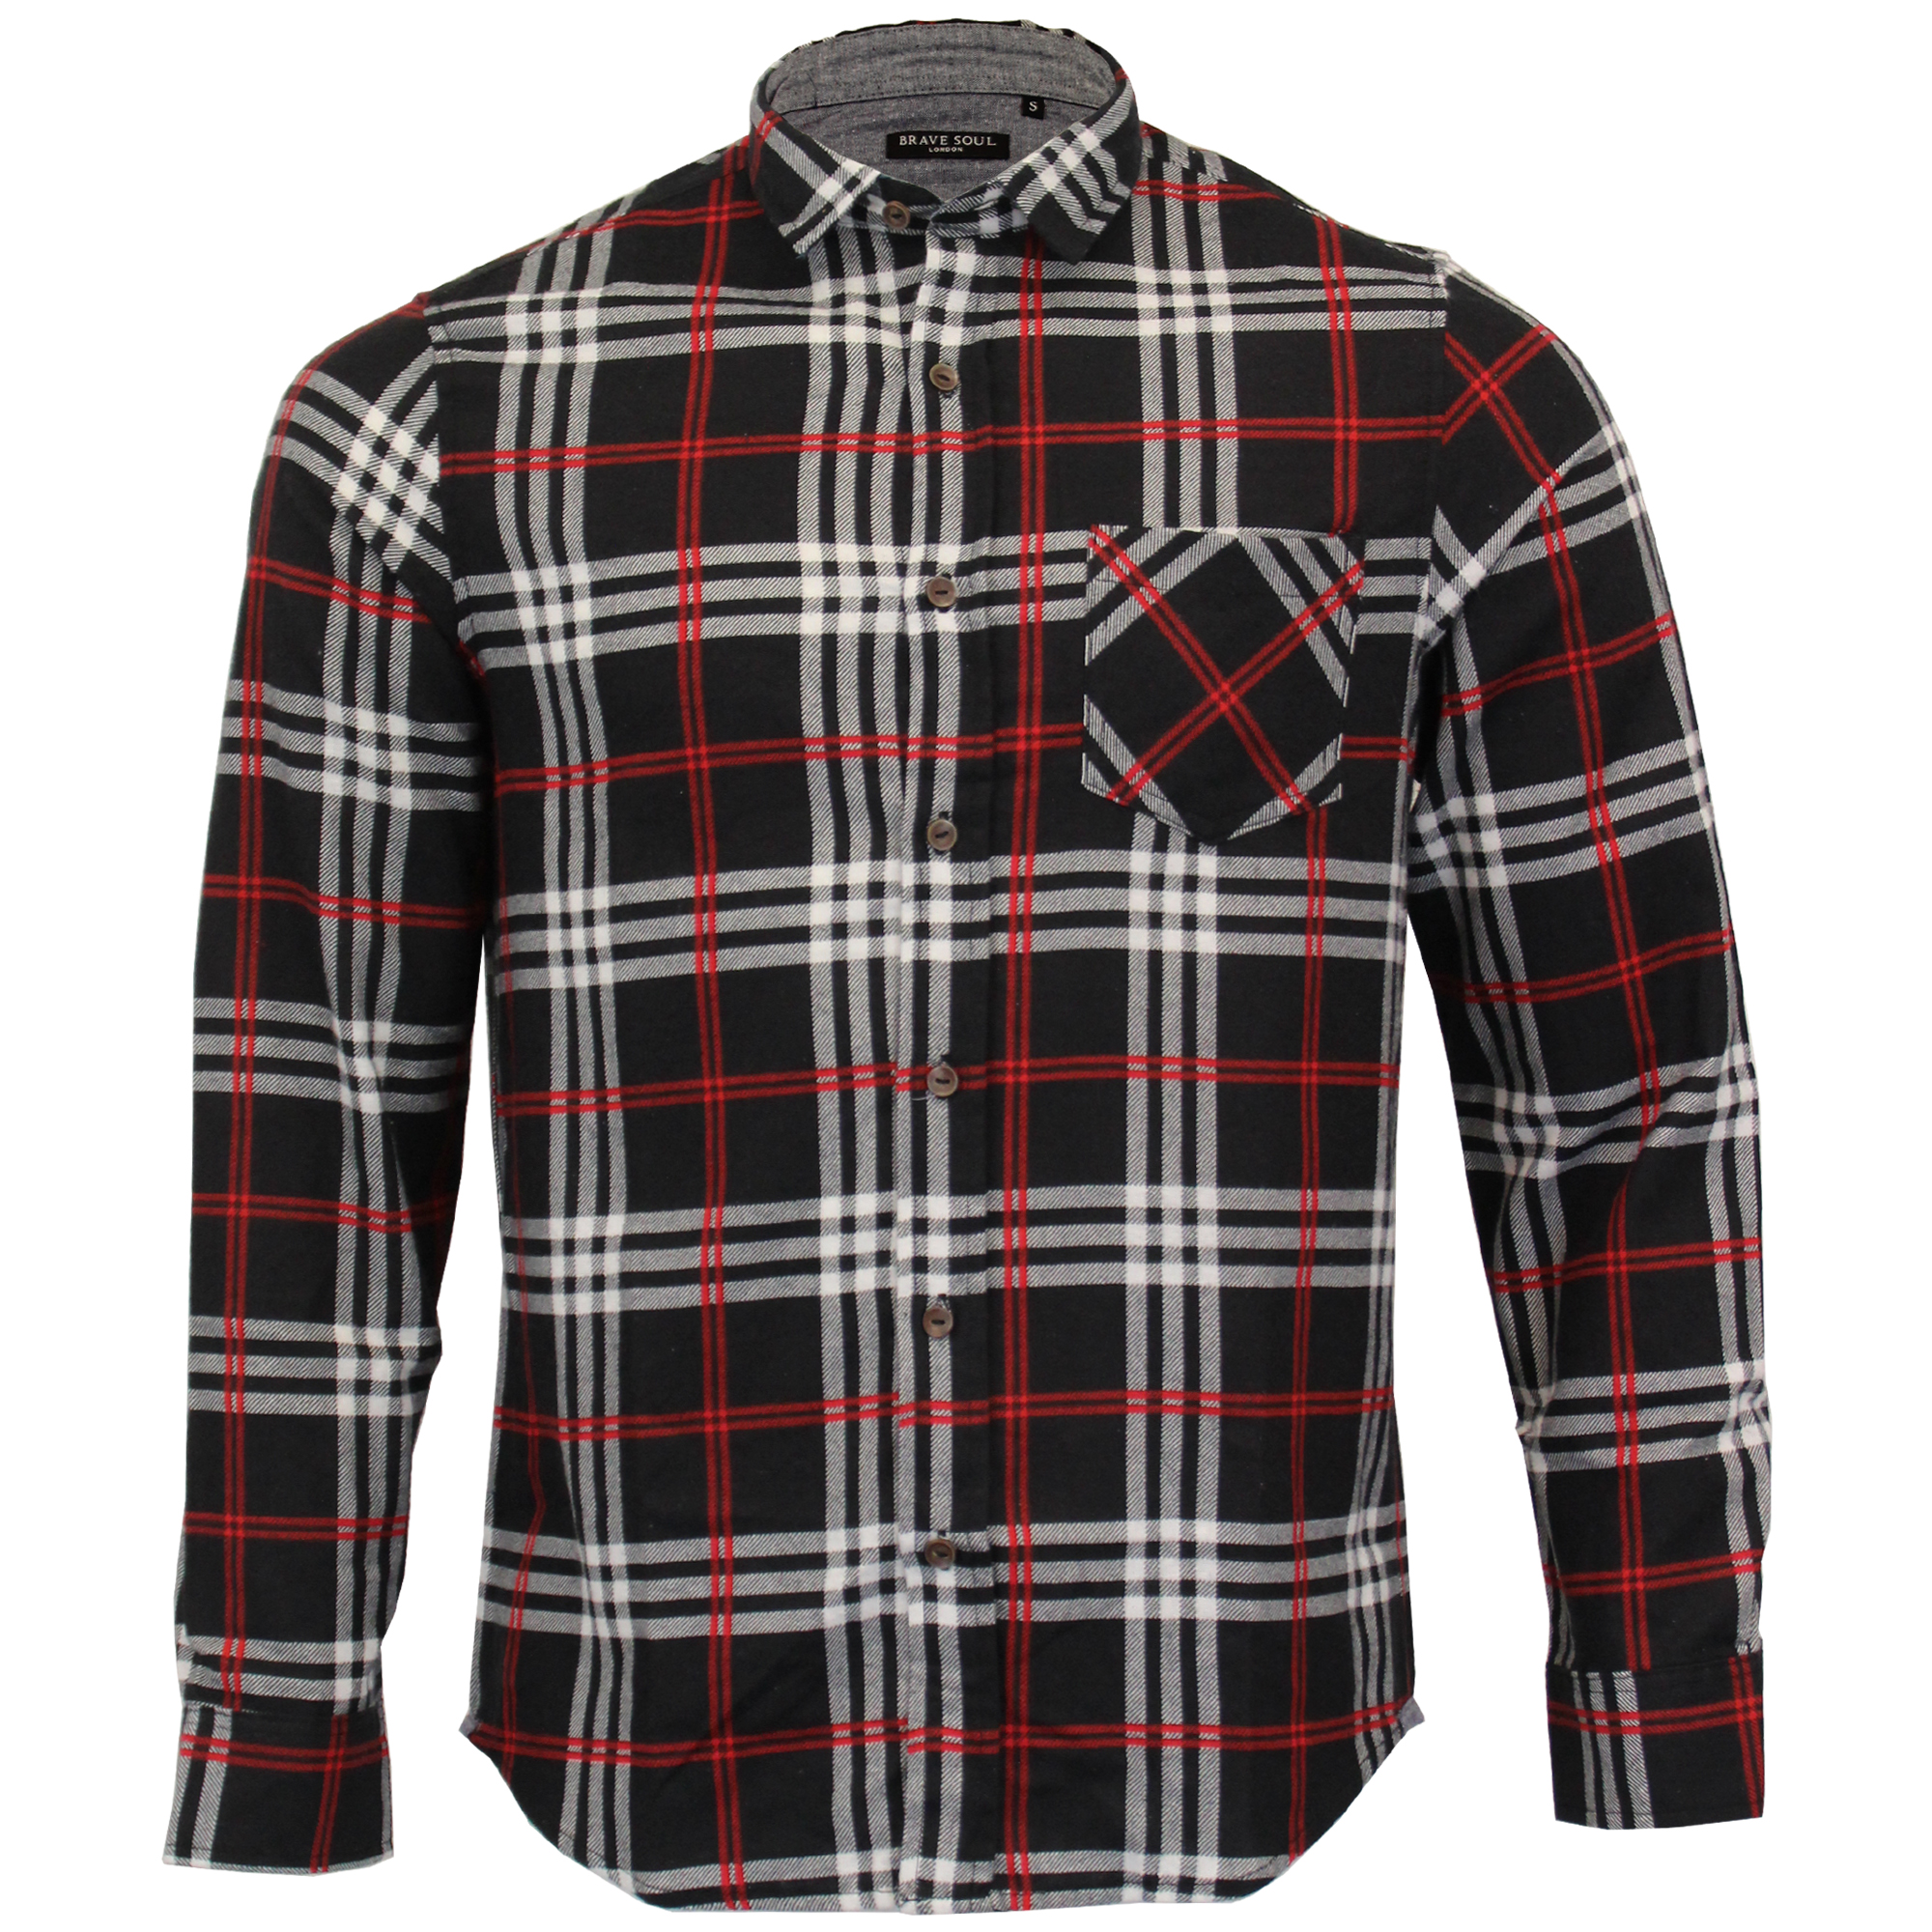 Mens-Checked-Tartan-Long-Sleeved-Collared-Shirt-By-Brave-Soul miniatuur 2